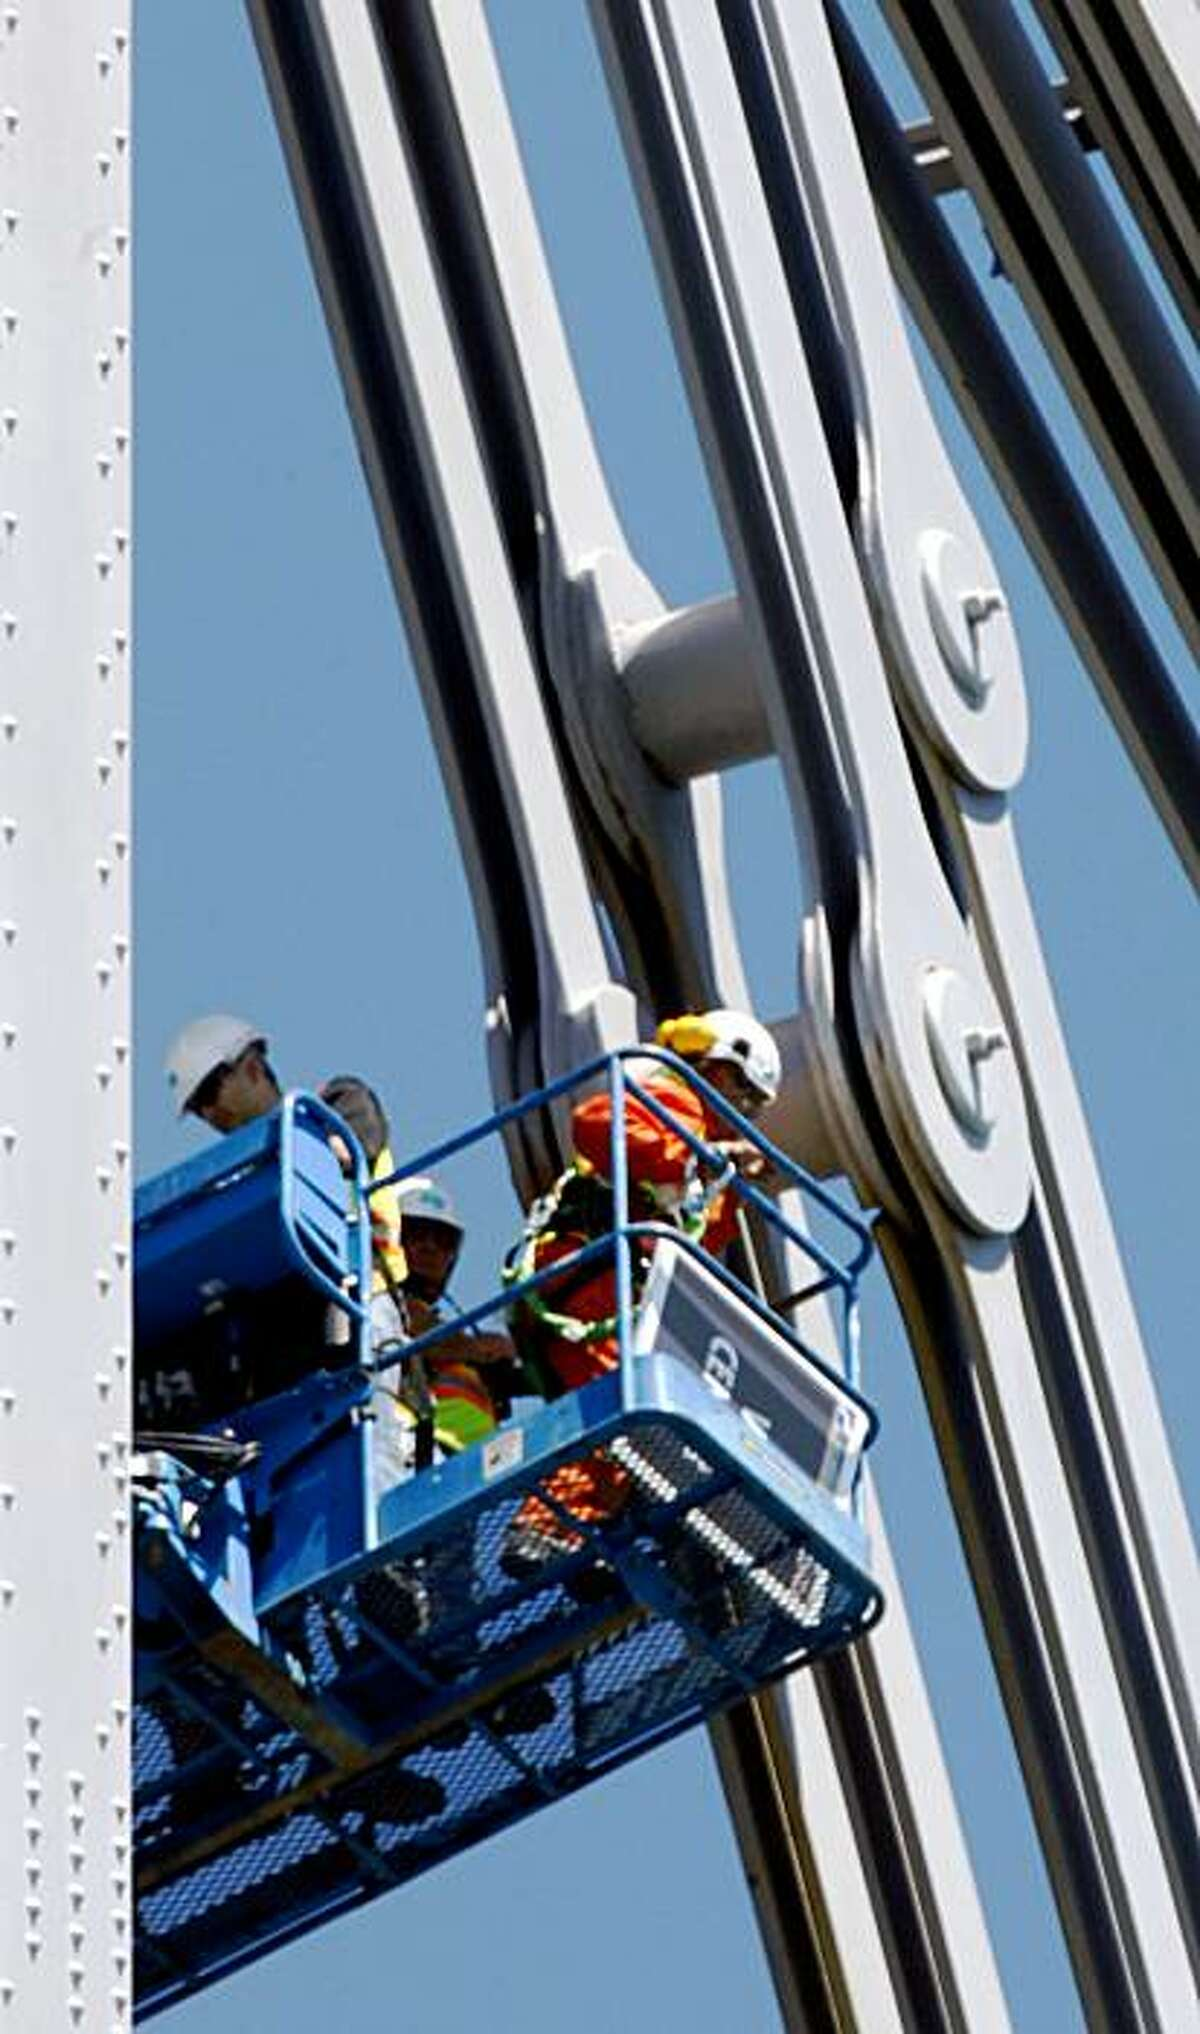 Caltrans workers survey the crack in the inside eyebar on the old boxed steel frame portion of the Bay Bridge on Sunday.